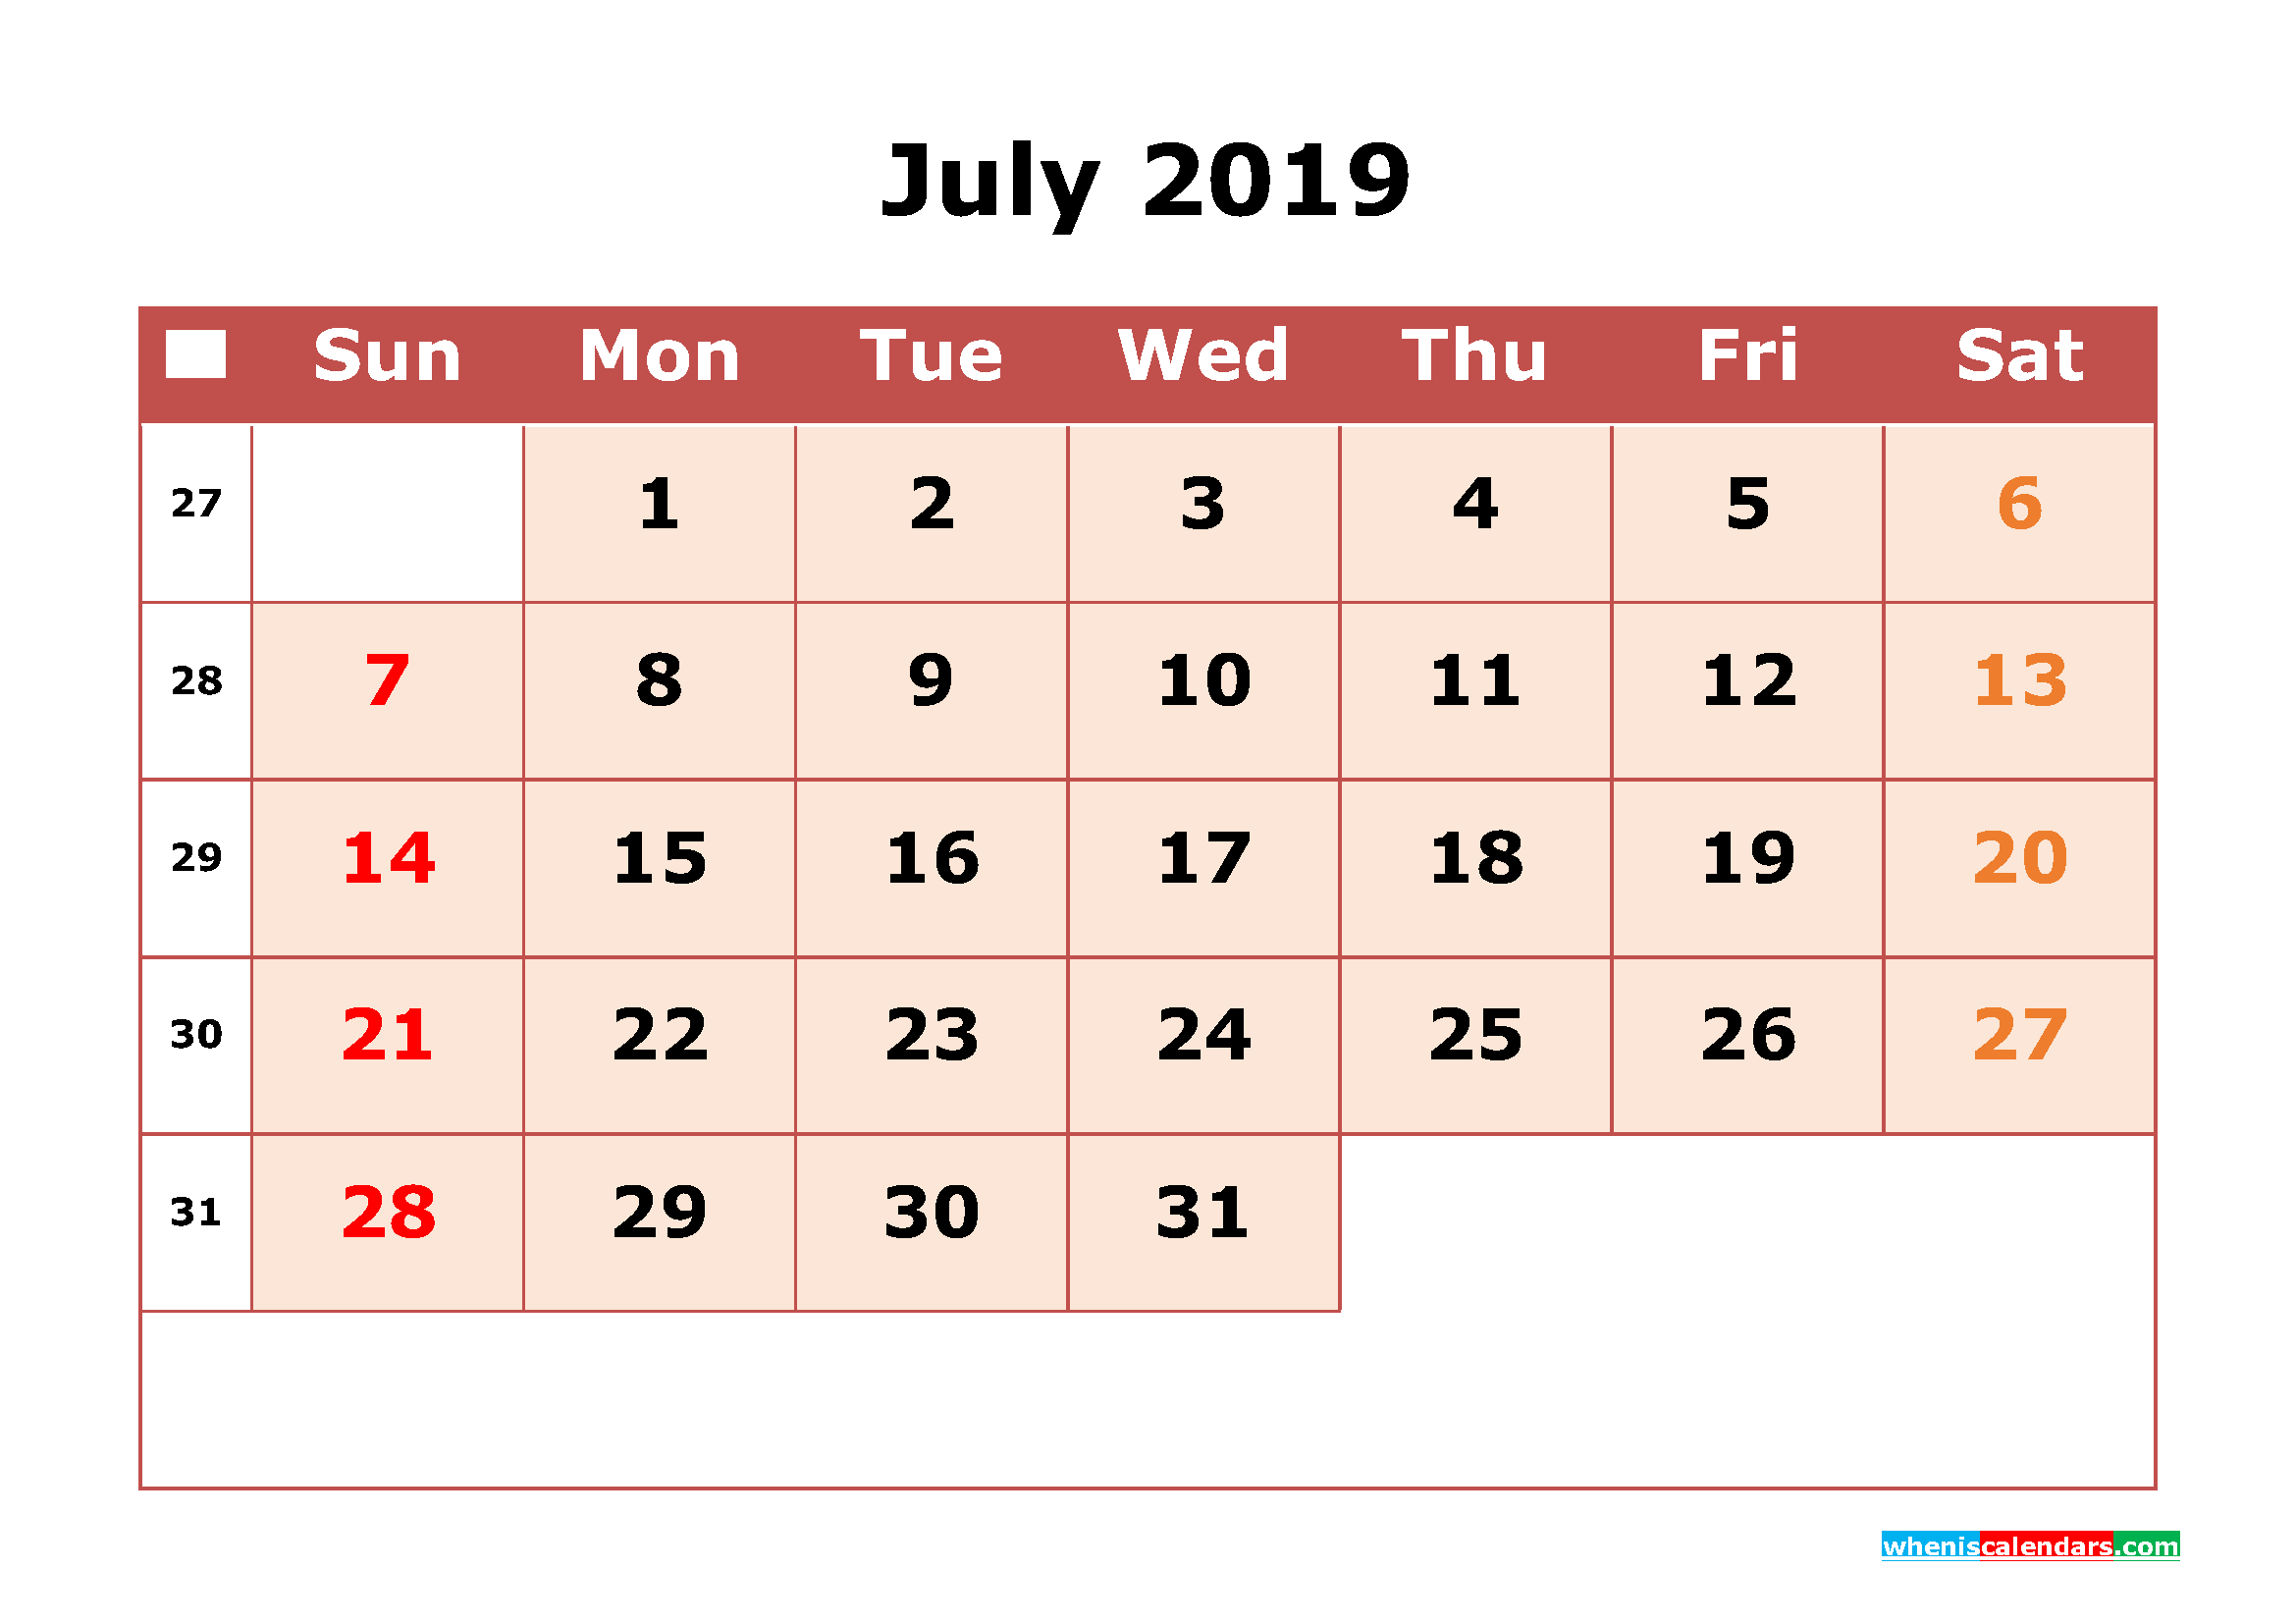 Get Free July 2019 Printable Calendar with Week Numbers as PDF, Image